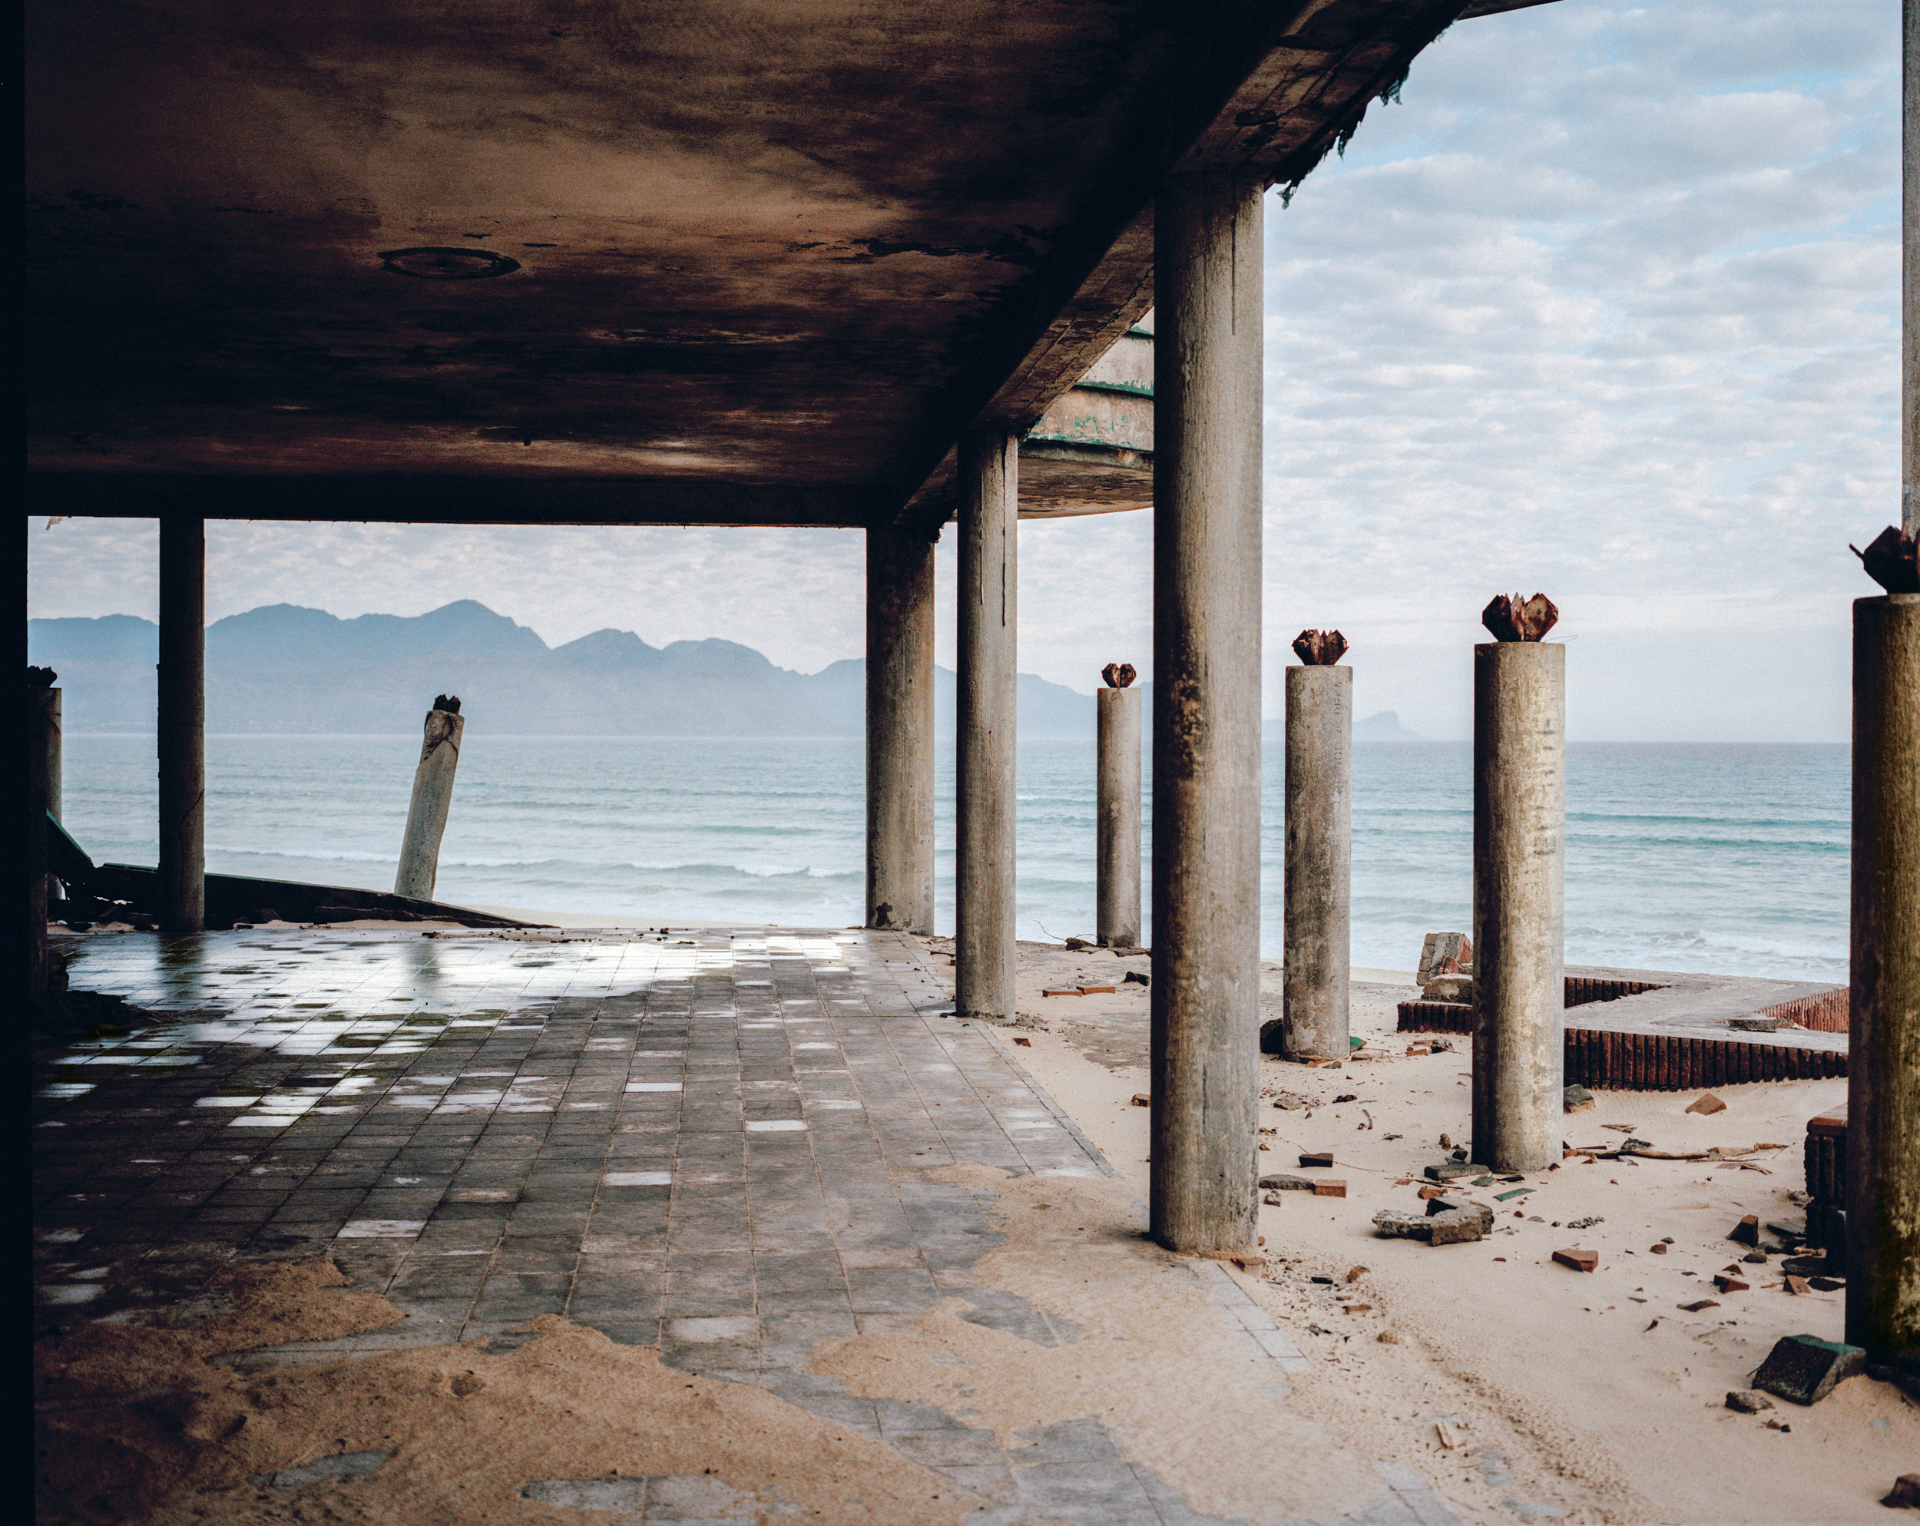 Macassar Beach Pavillon on False Bay. Abandoned water park due to mismanagement now reclaimed by dunes. Cape Town, South Africa, 2018.